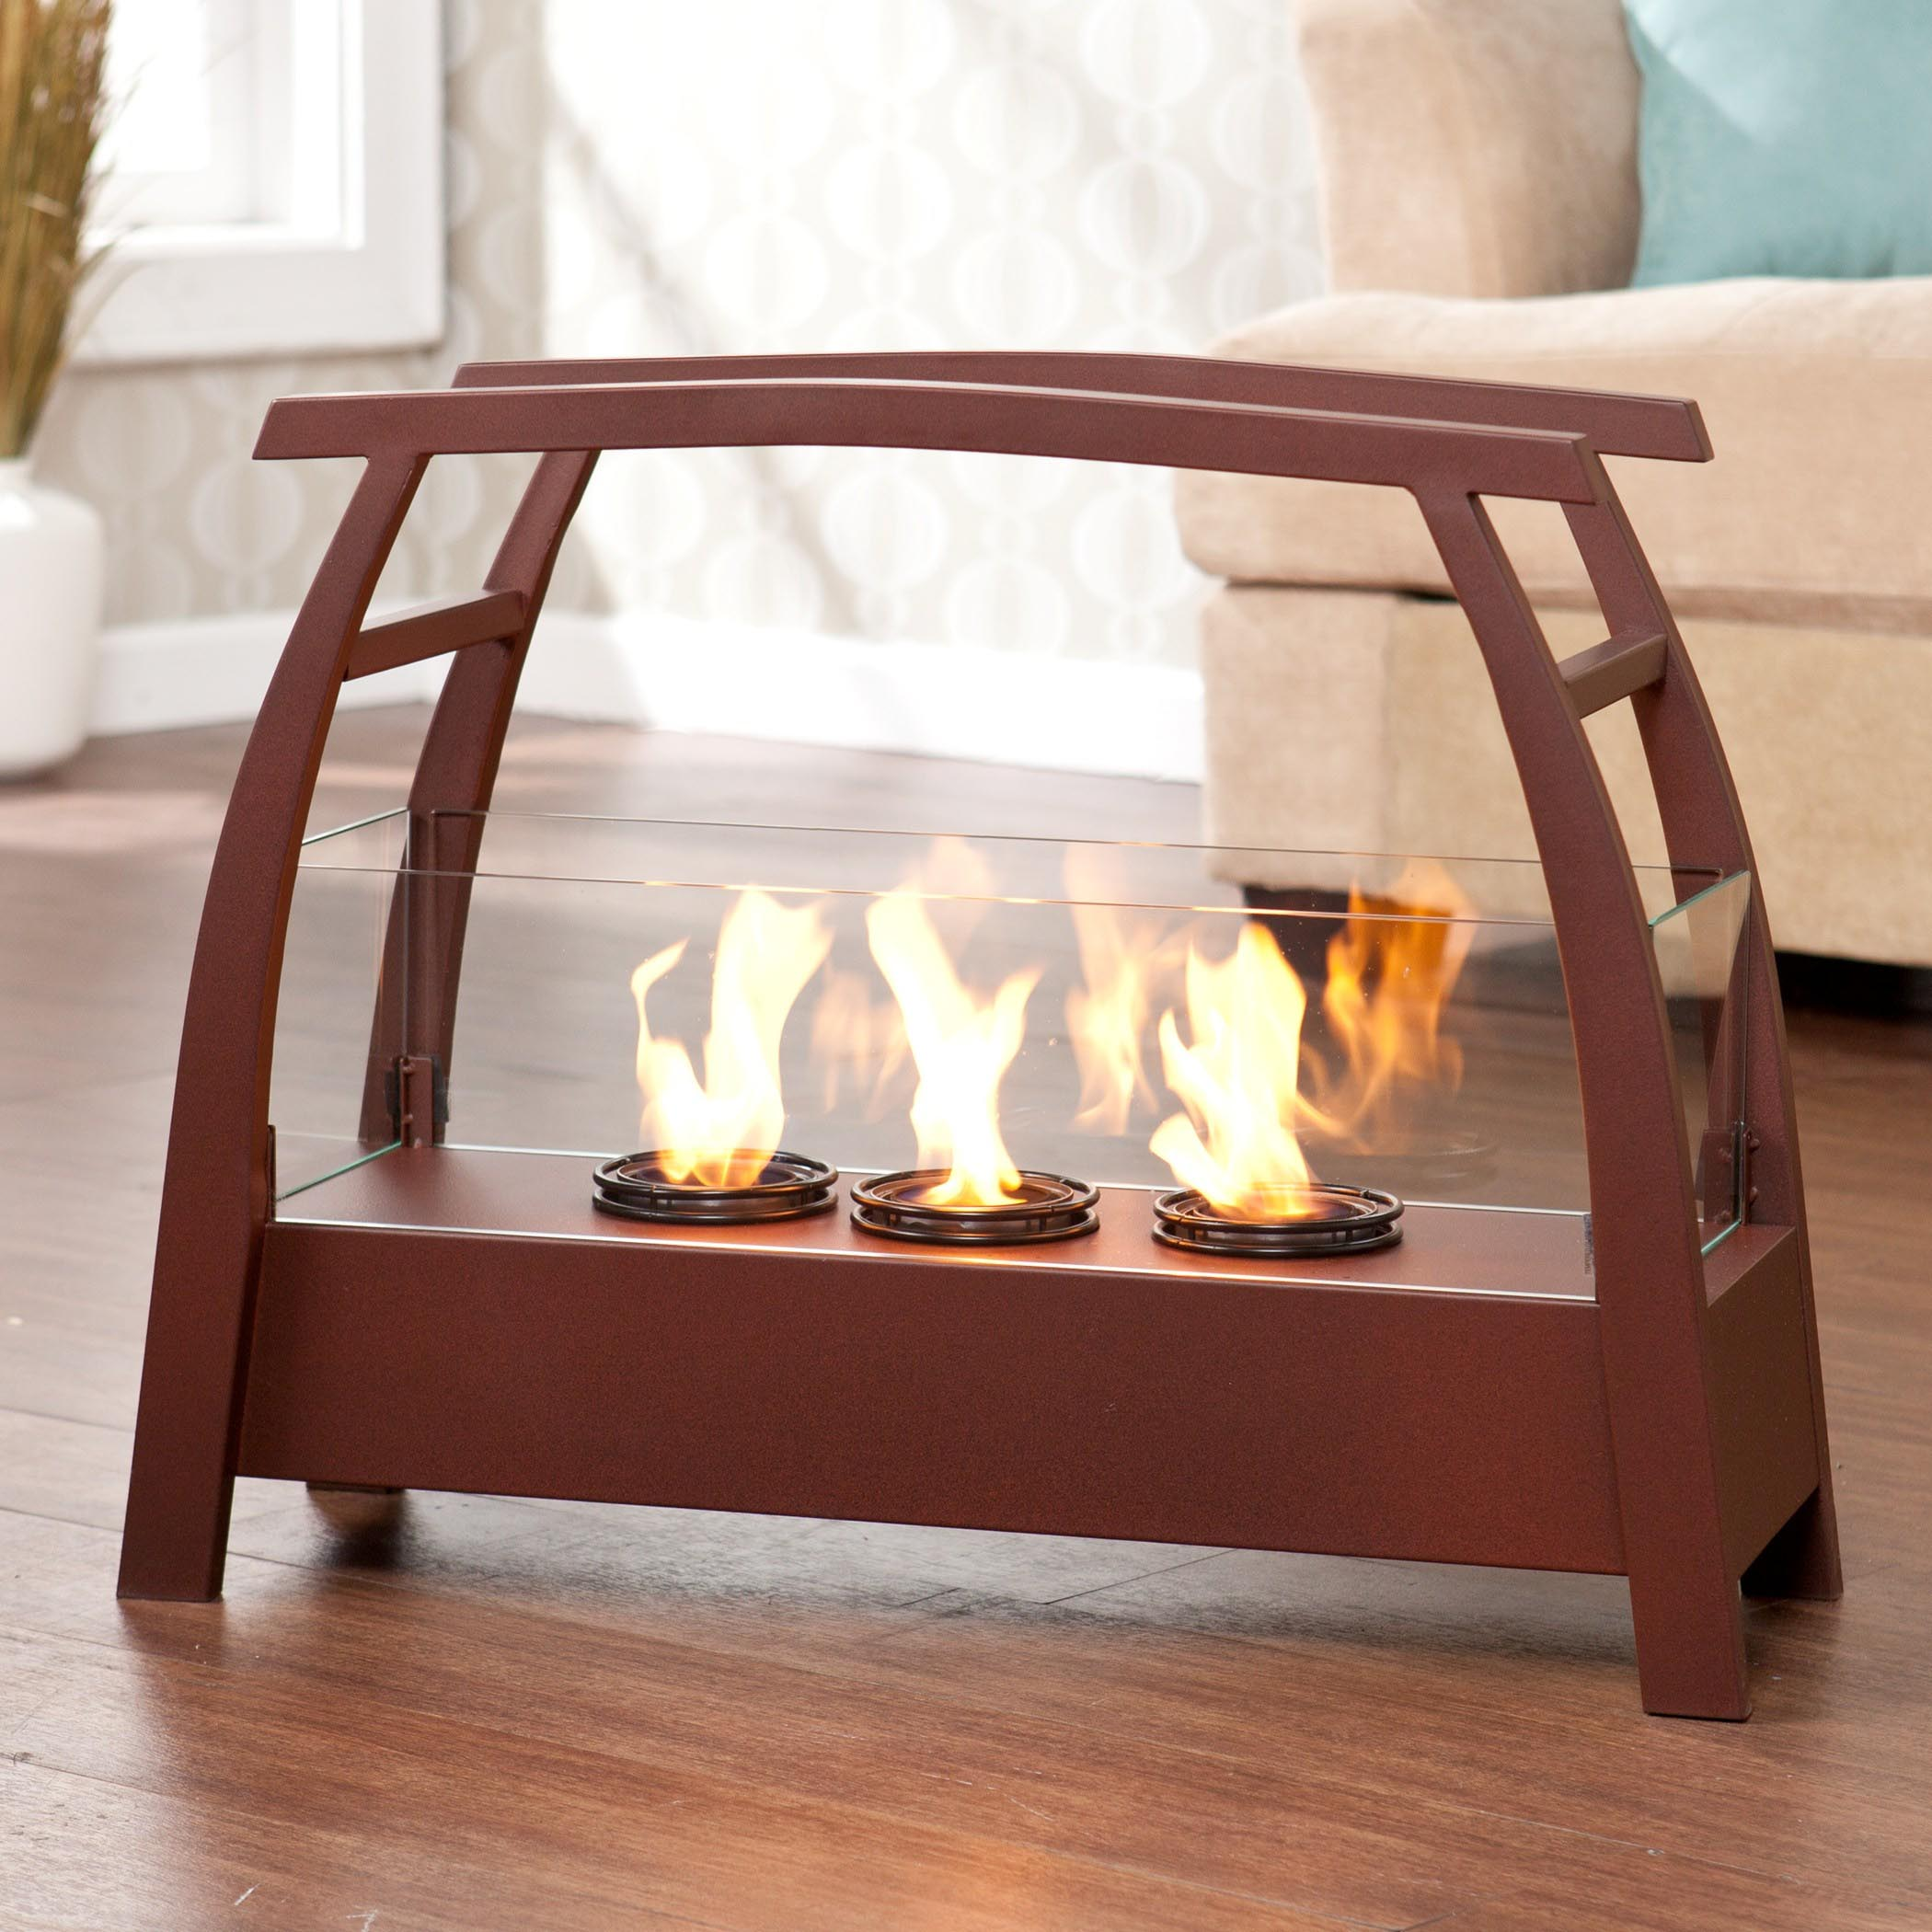 Indoor Coffee Table With Fire Pit